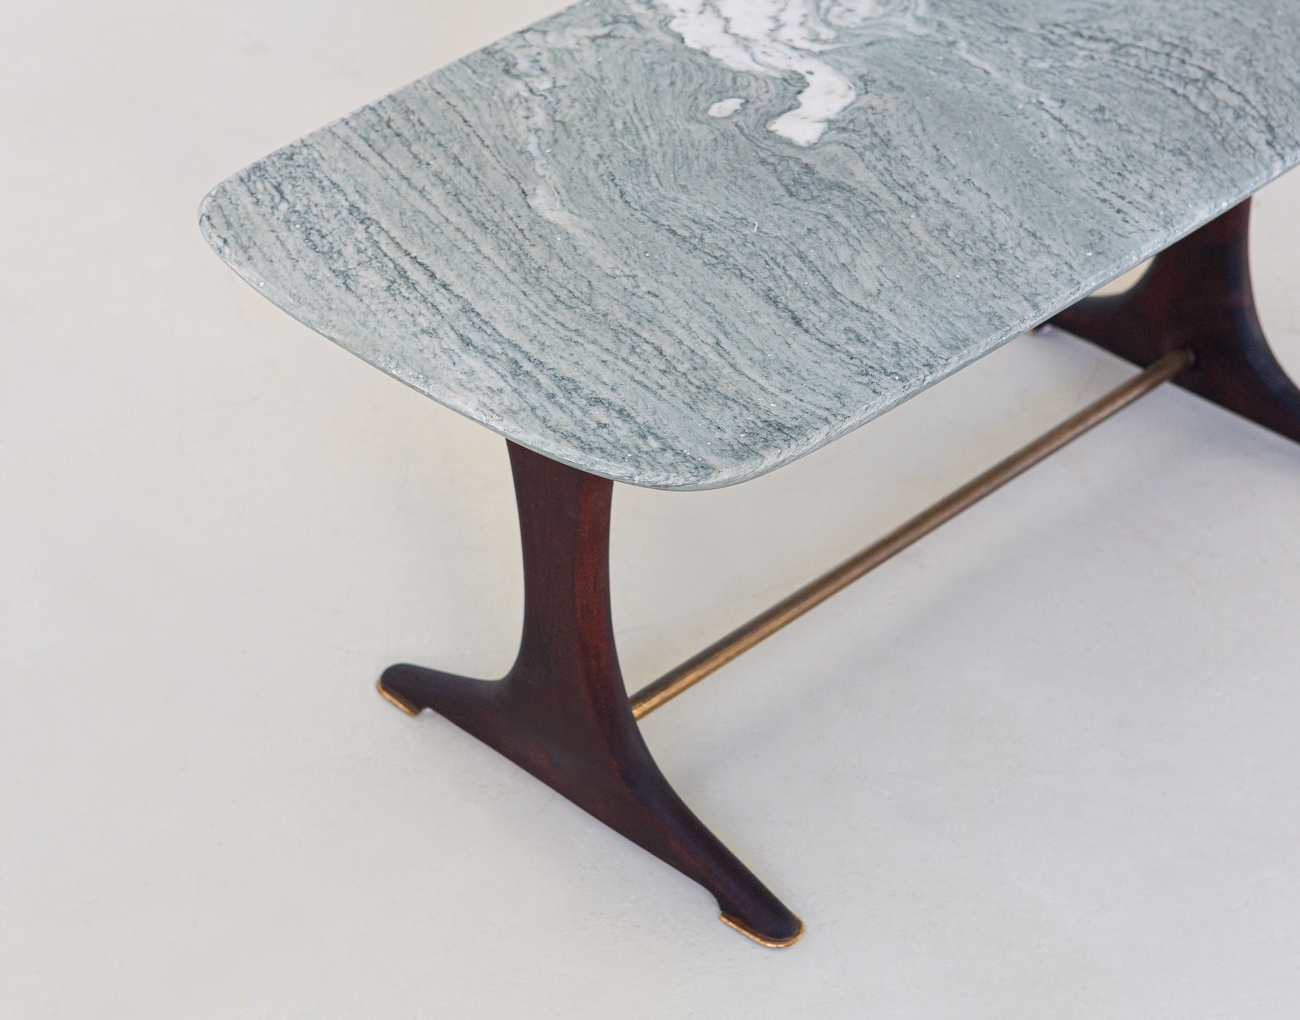 1950s-italian-low-table-with-marble-top-6-t88